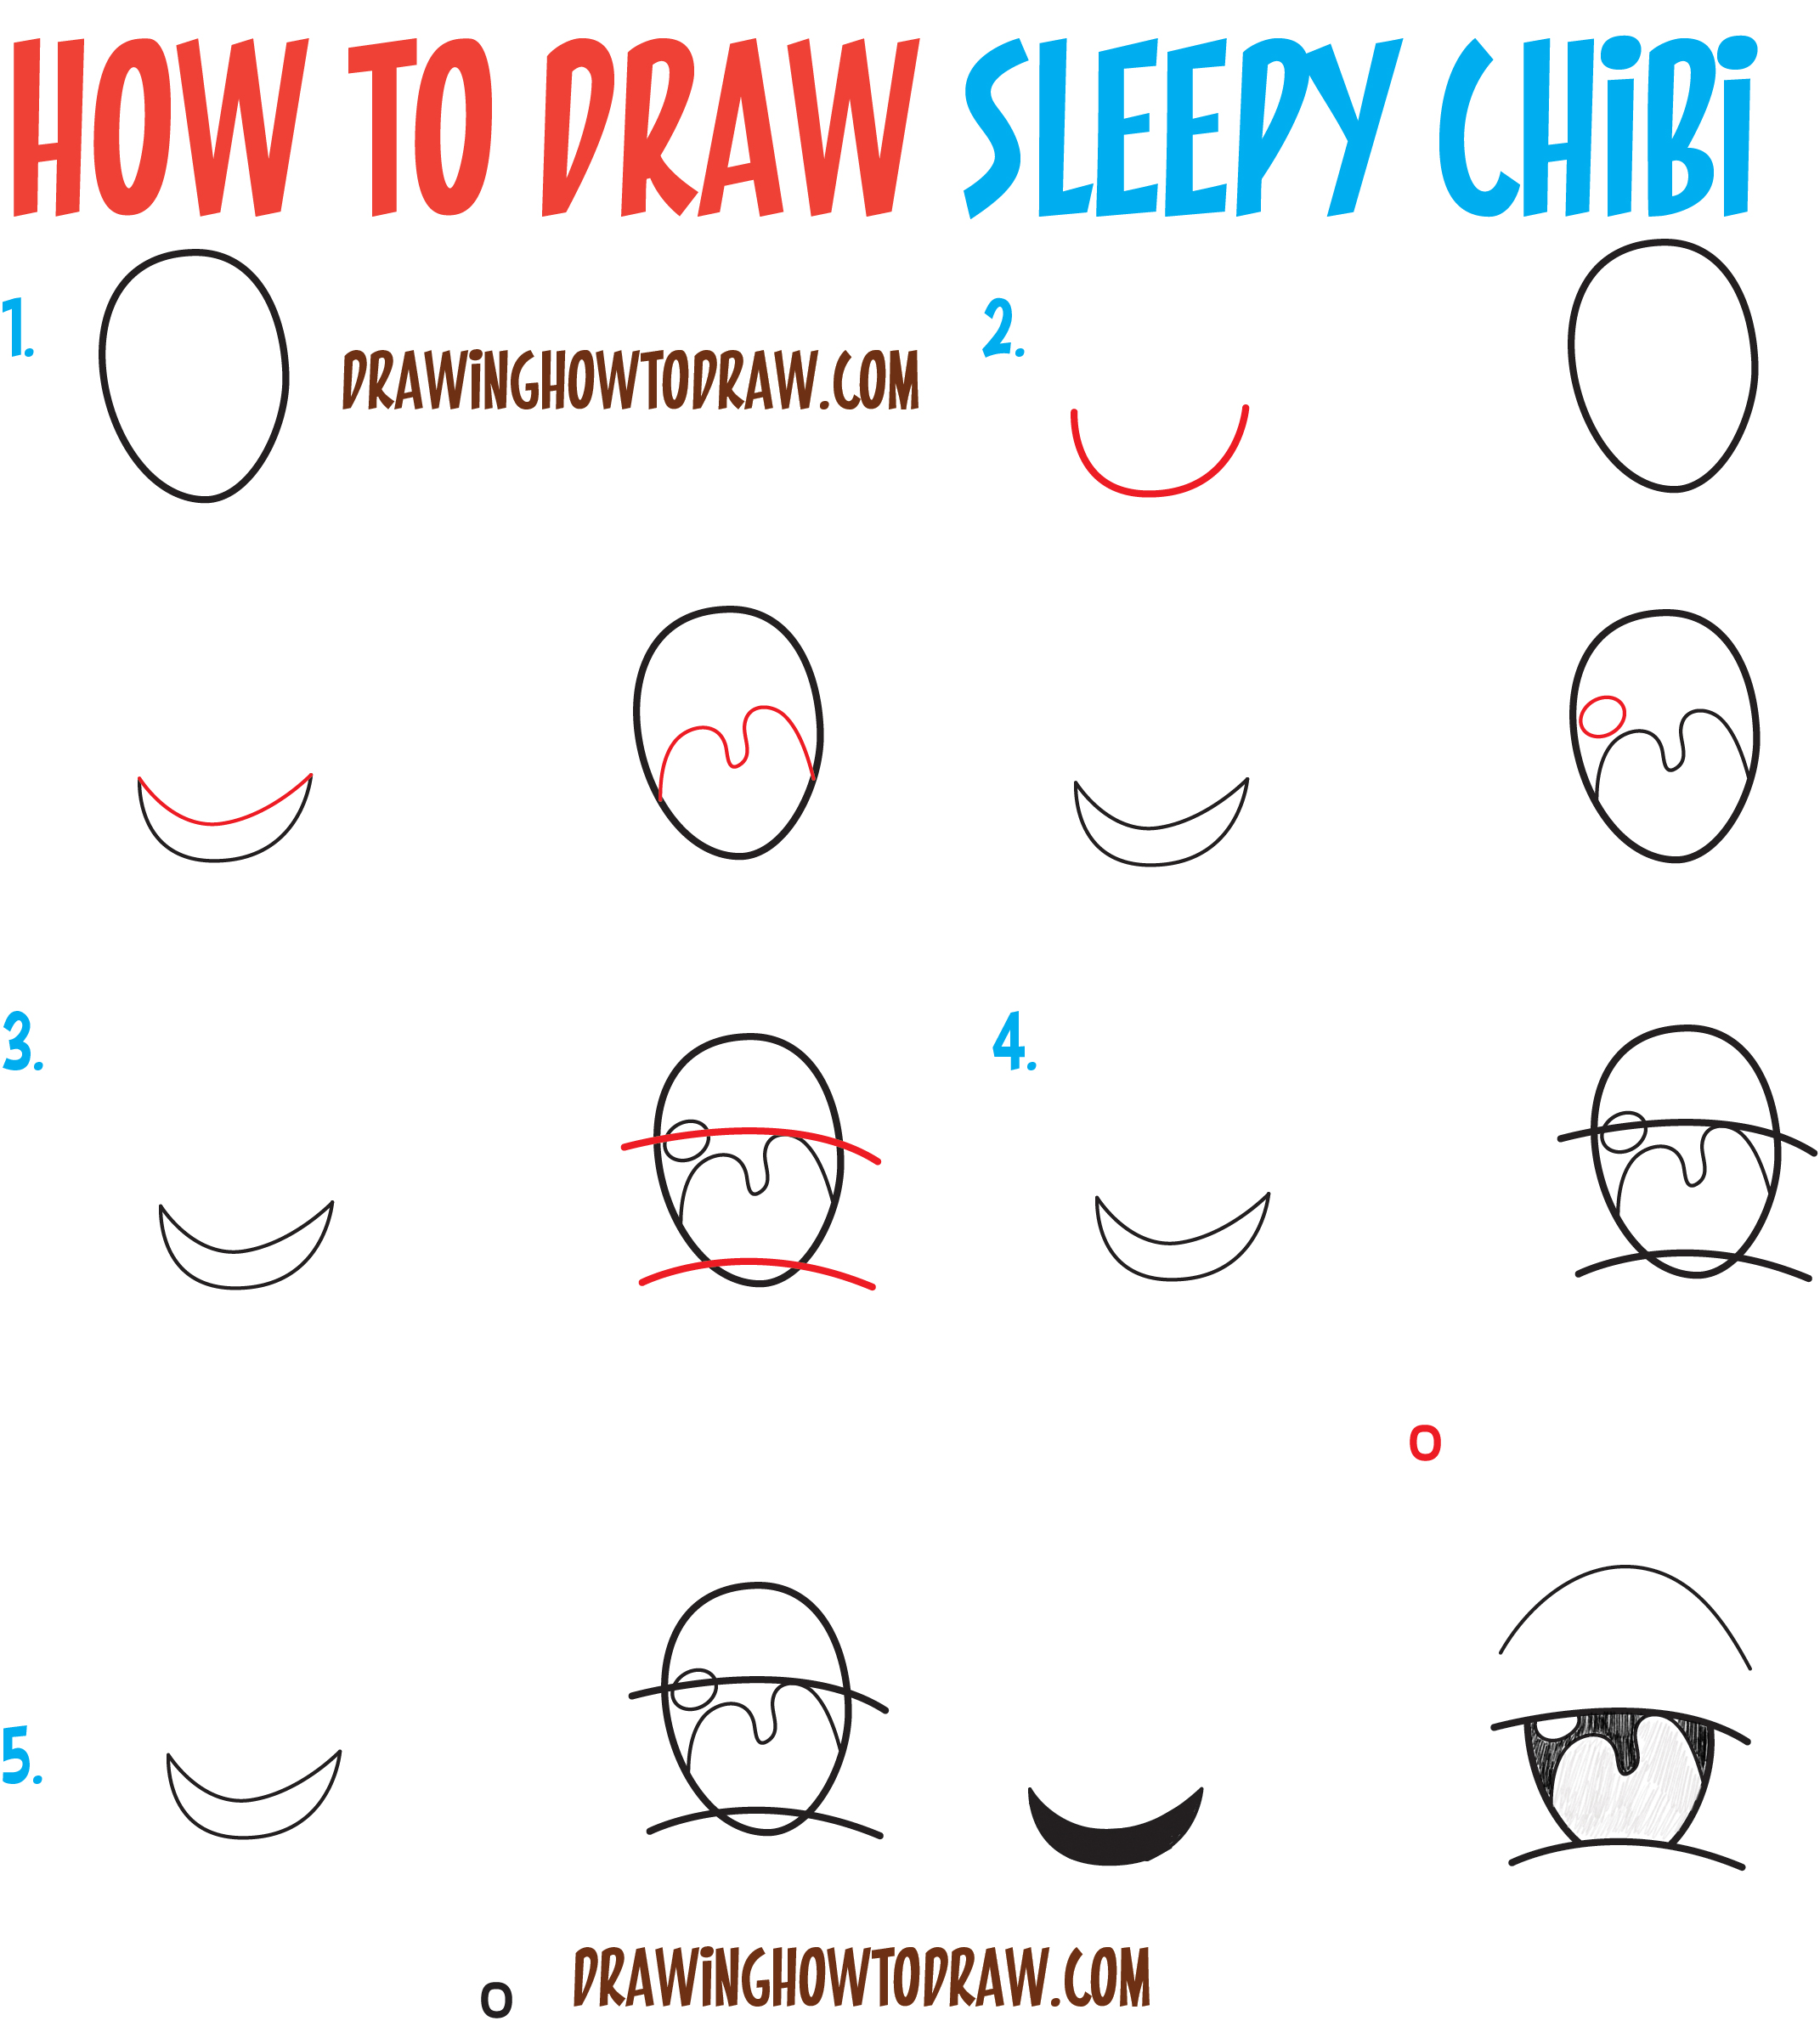 How to draw tired sleepy exhausted chibi expressions for How to make doodle art